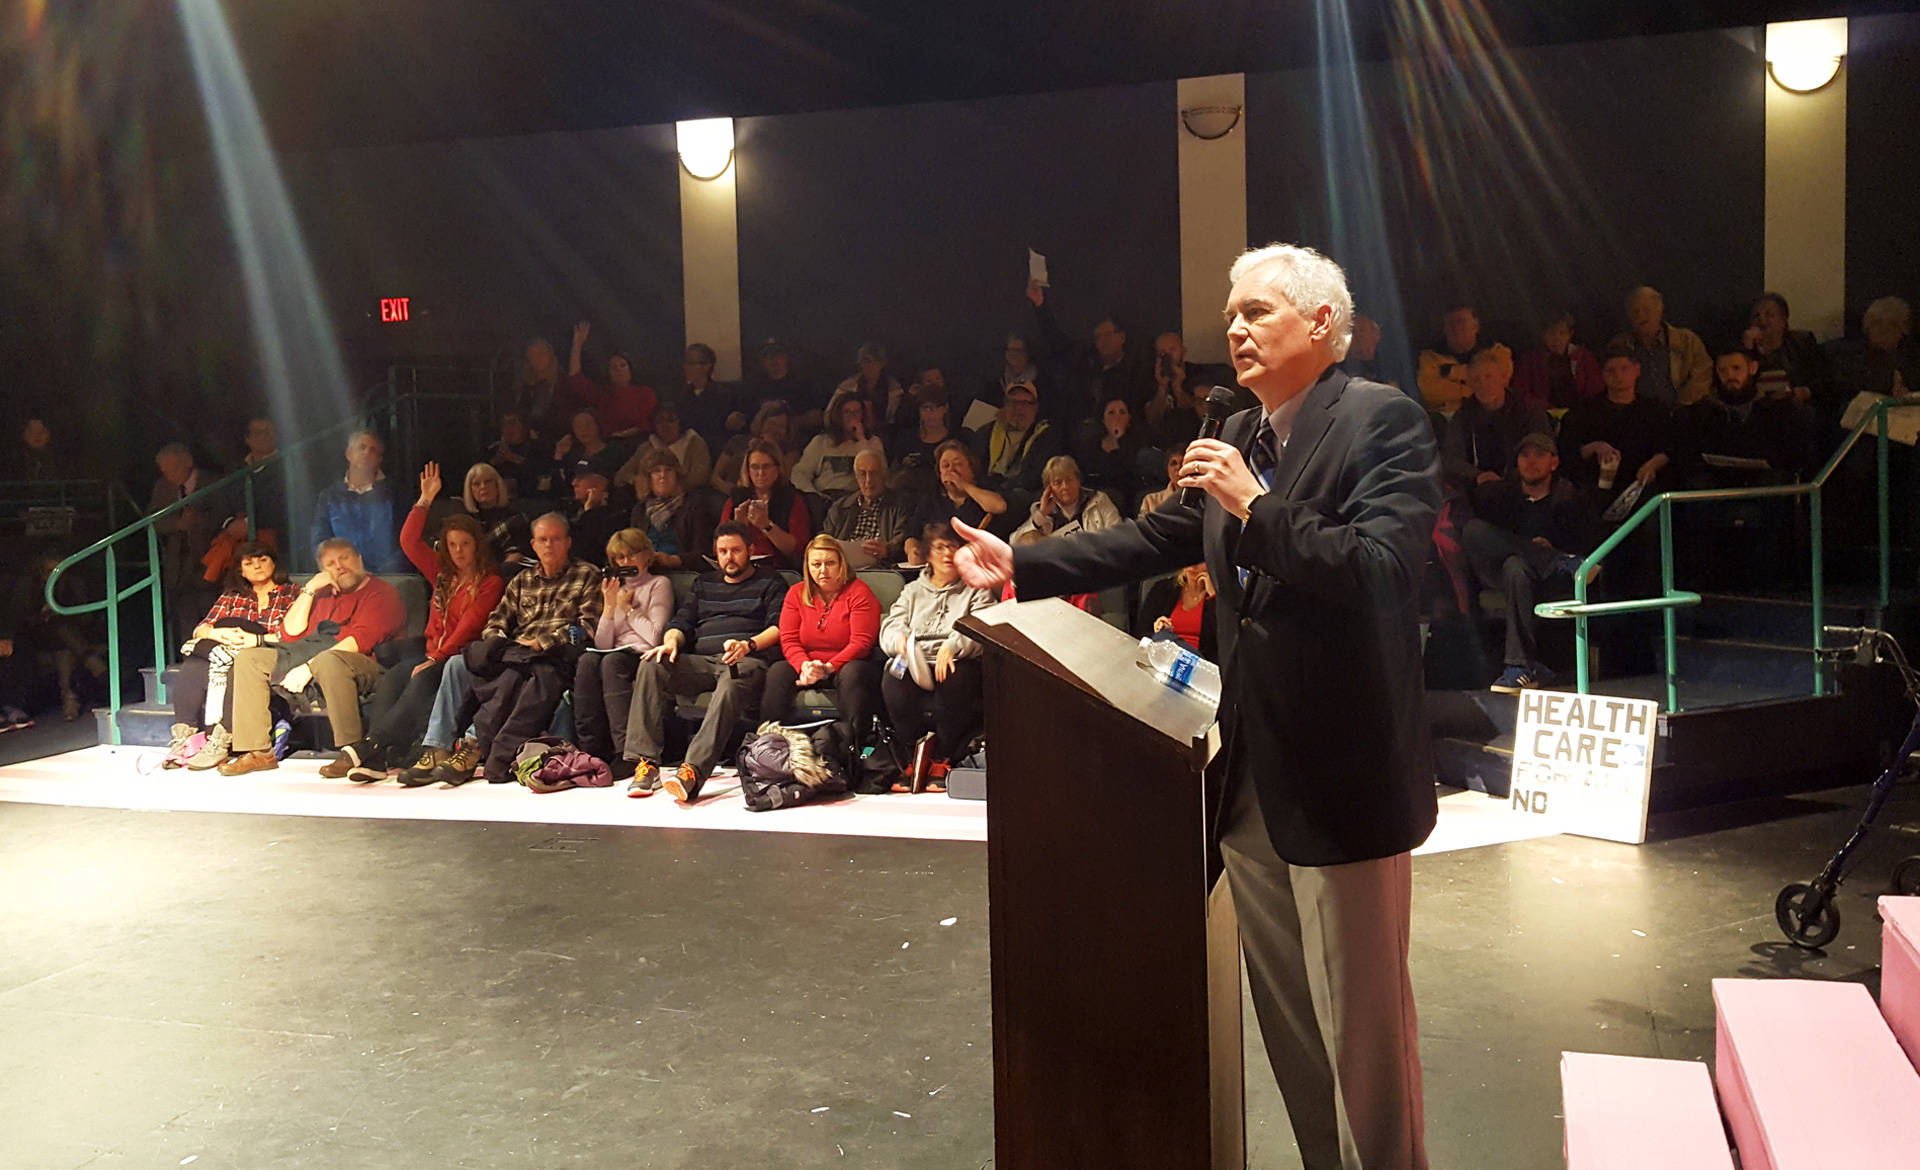 Rep. Tom McClintock (R) speaks at a packed town hall meeting in Roseville on Saturday. Feb. 4, 2016. Katie Orr/KQED